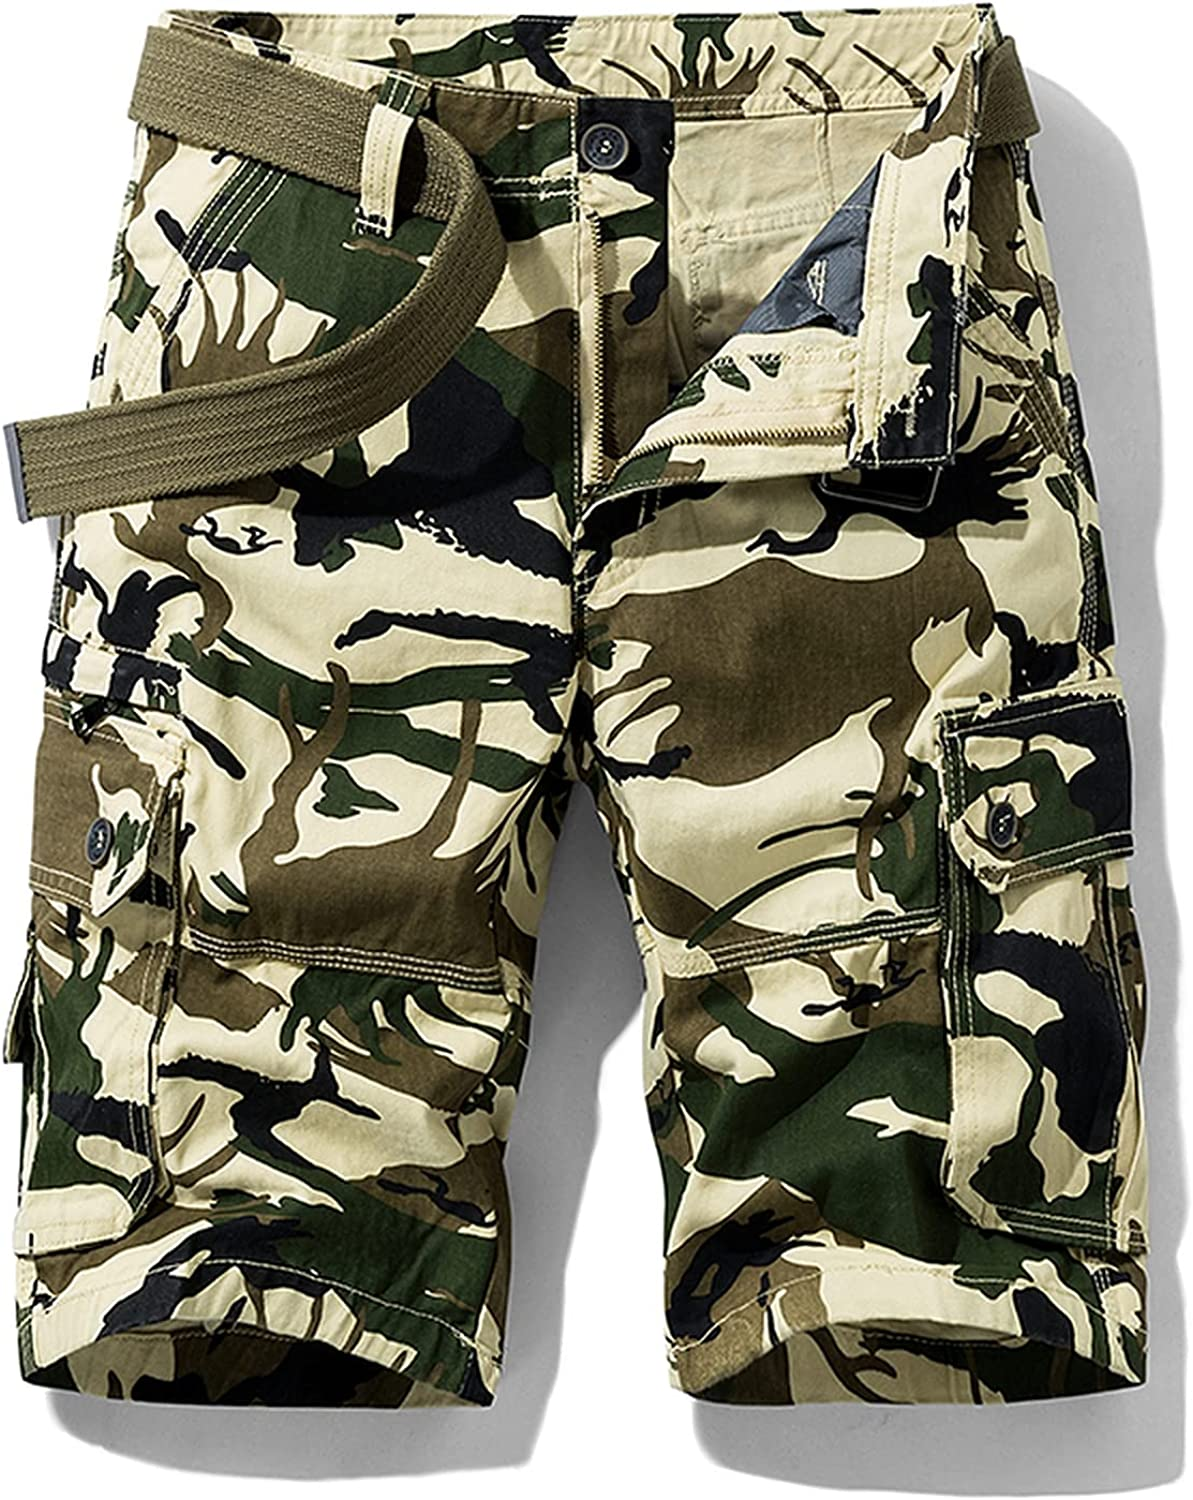 Dellk Men Summer New Tactical Cotton Cargo Shorts Streetwear Pockets Casual Fashion Loose Camouflage